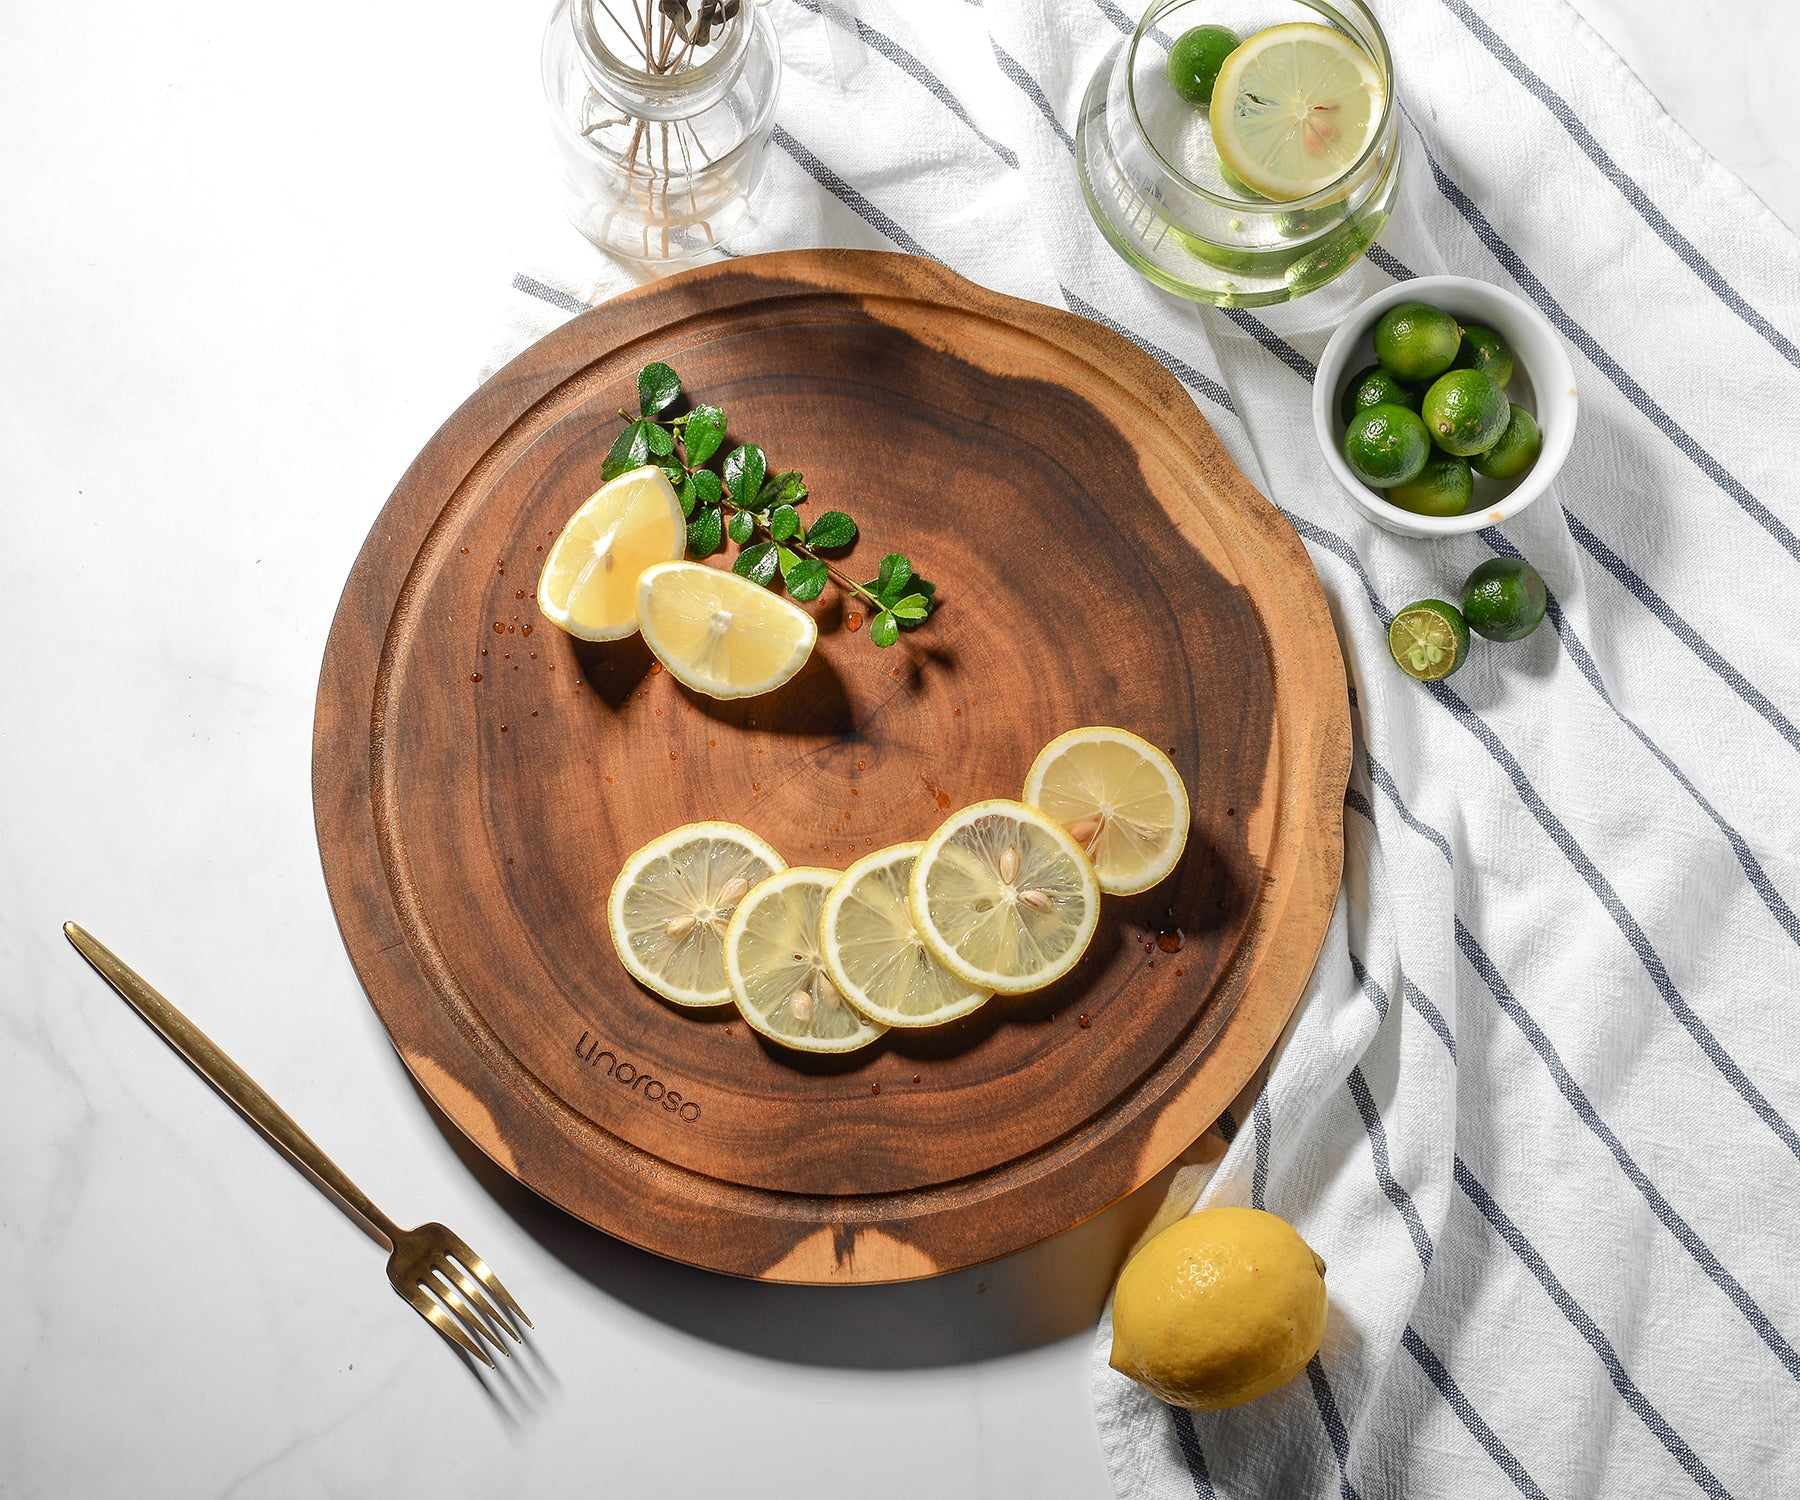 Cutting board - Acacia - 12*12*1inch - Round